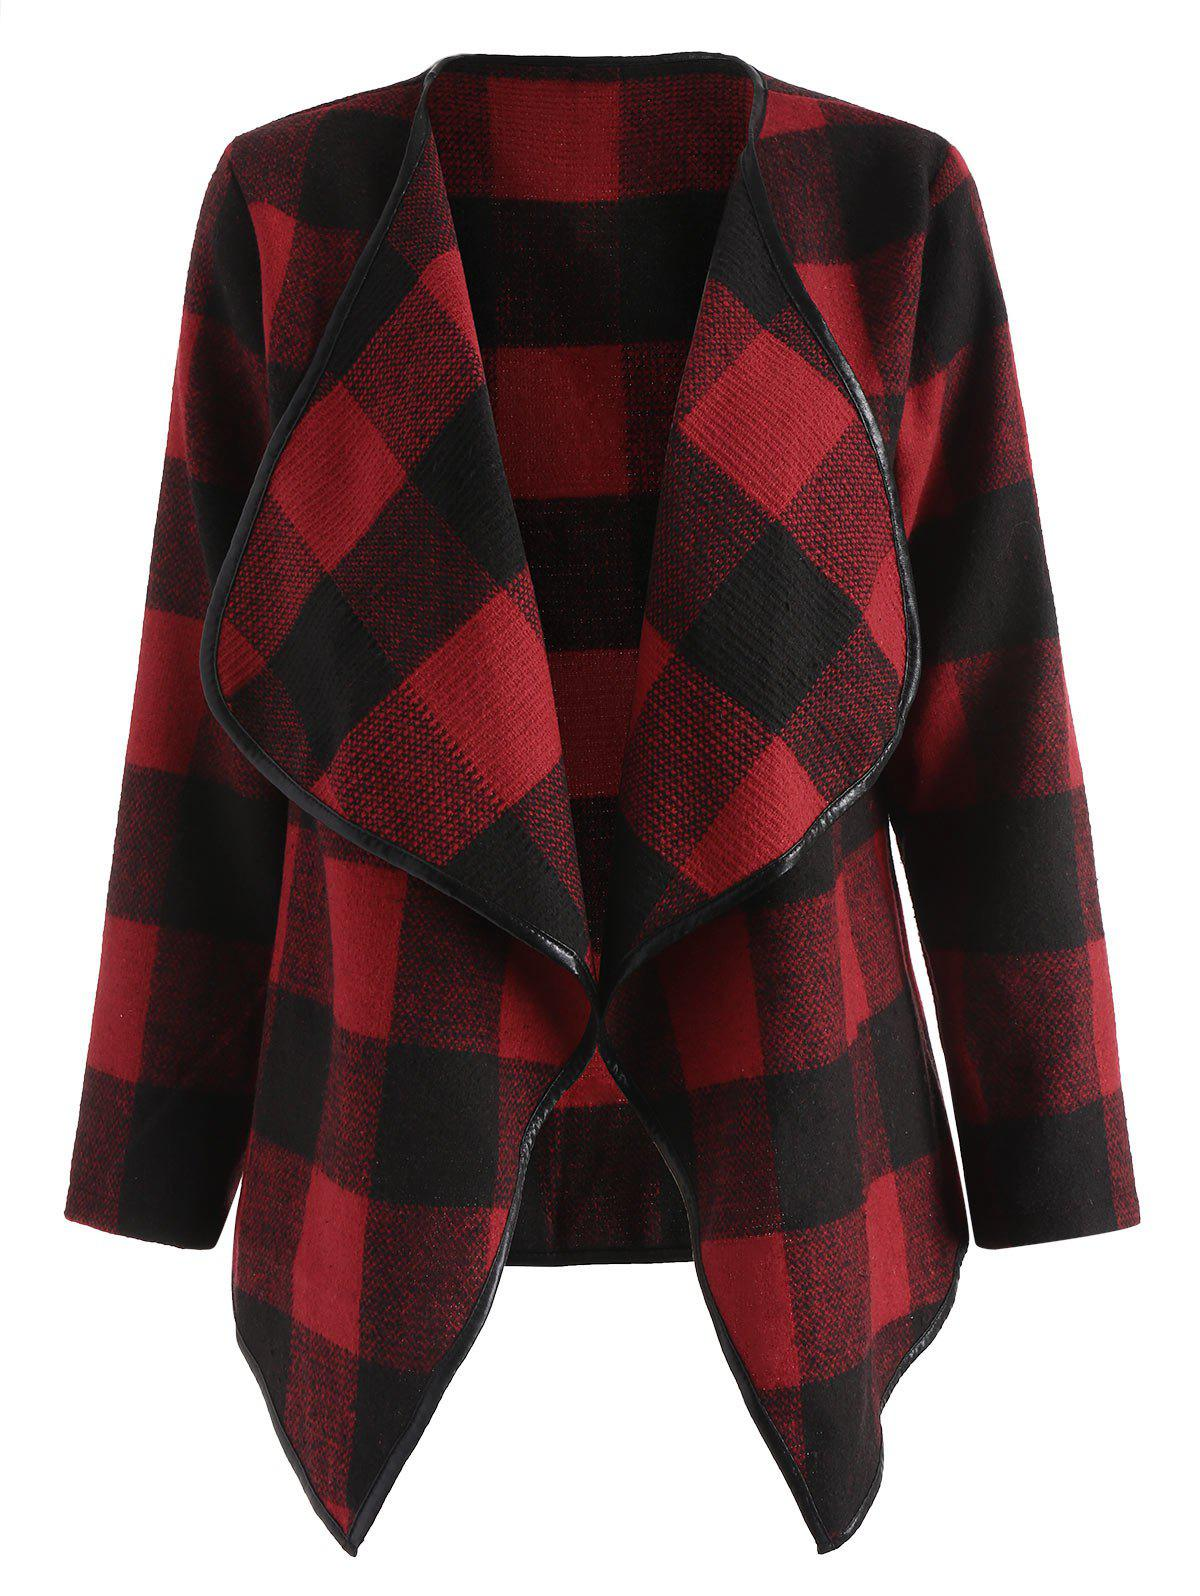 Plaid Open Front Asymmetric Jacket - RED S